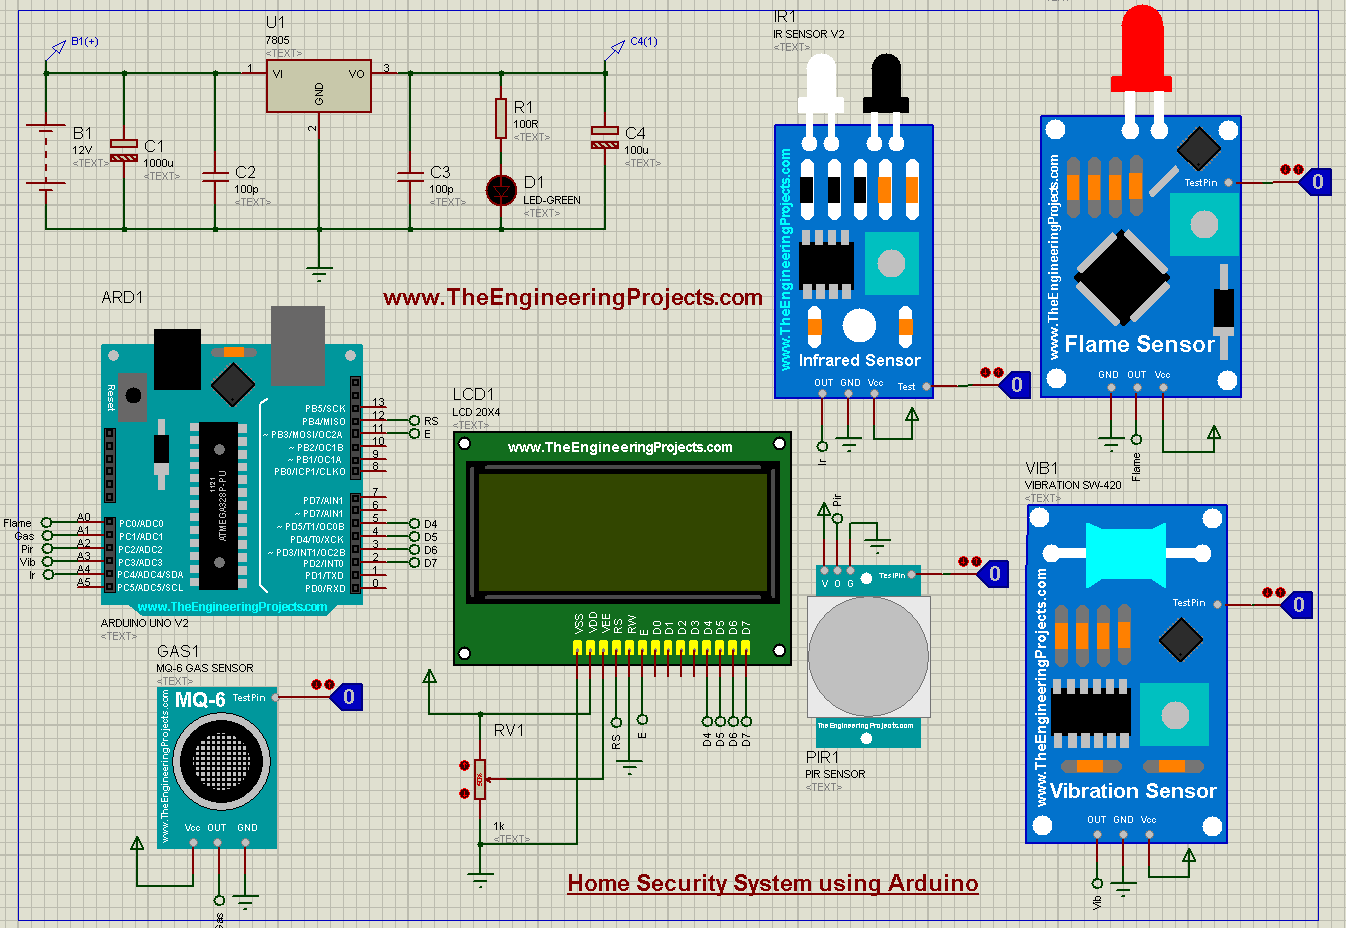 Home Security System using Arduino, Home Security System, Home Security System Arduino, arduino Home Security System, Home Security System simulation, Home Security System in proteus, Home Security Project